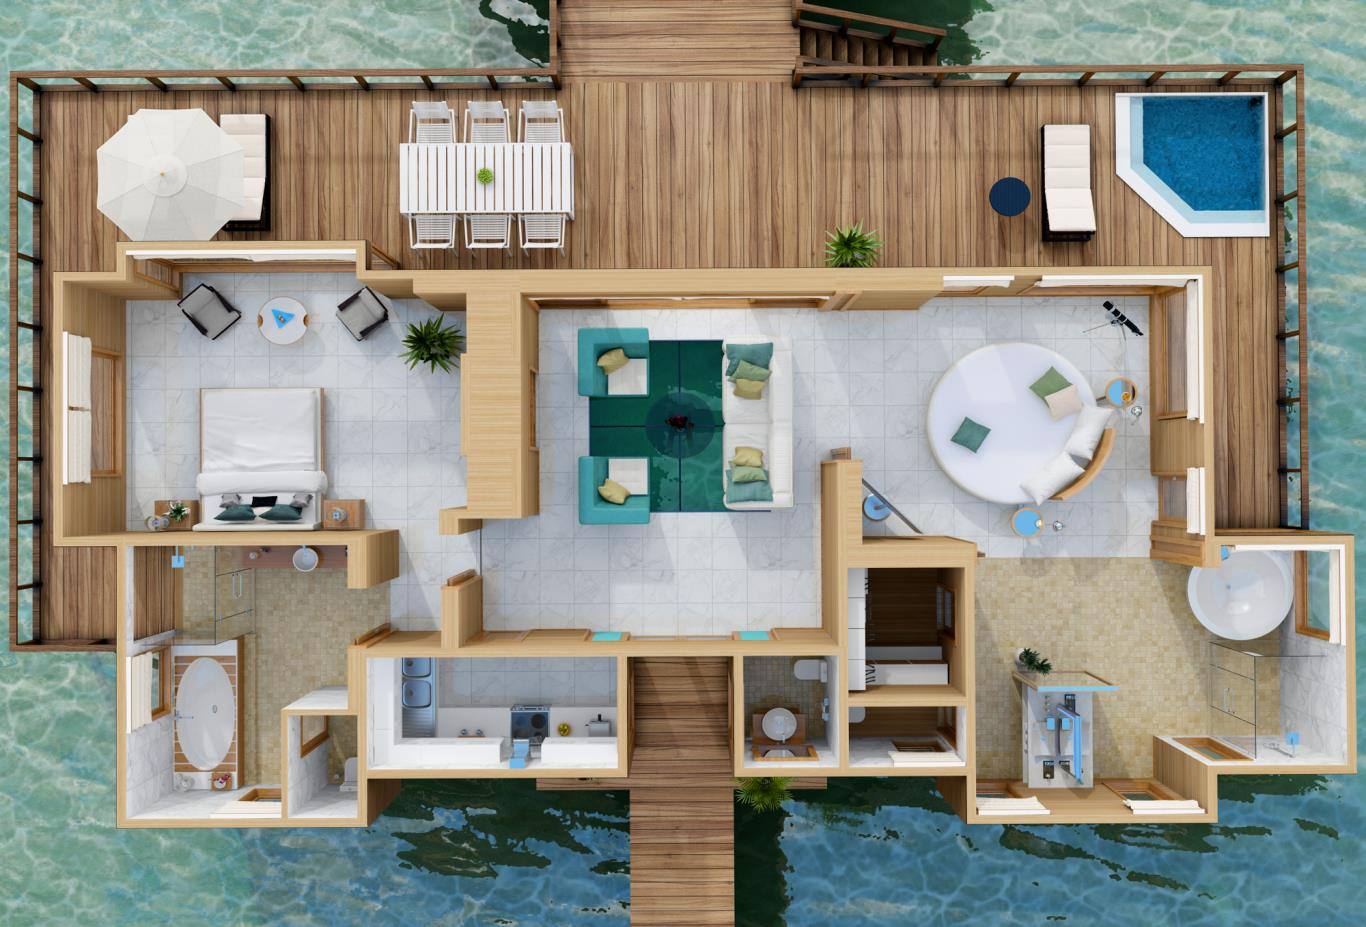 Sunset Water Villa Floorplan